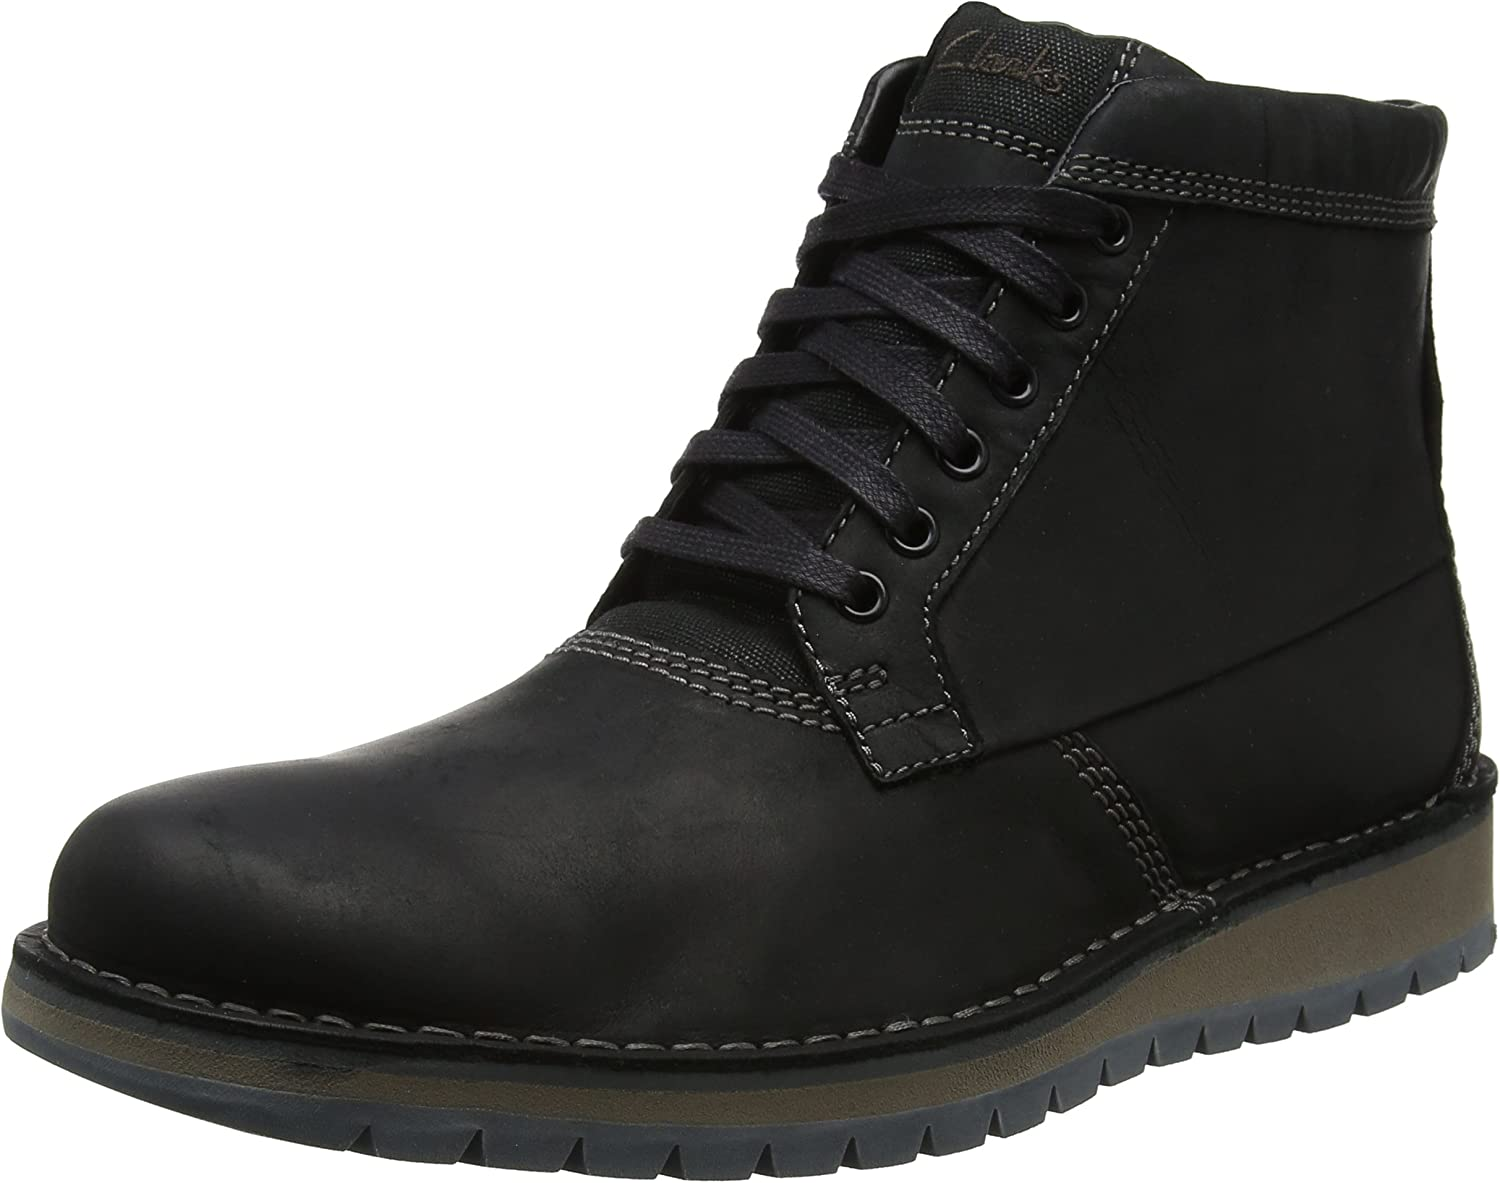 Clarks Men's Varby Top Classic Boots